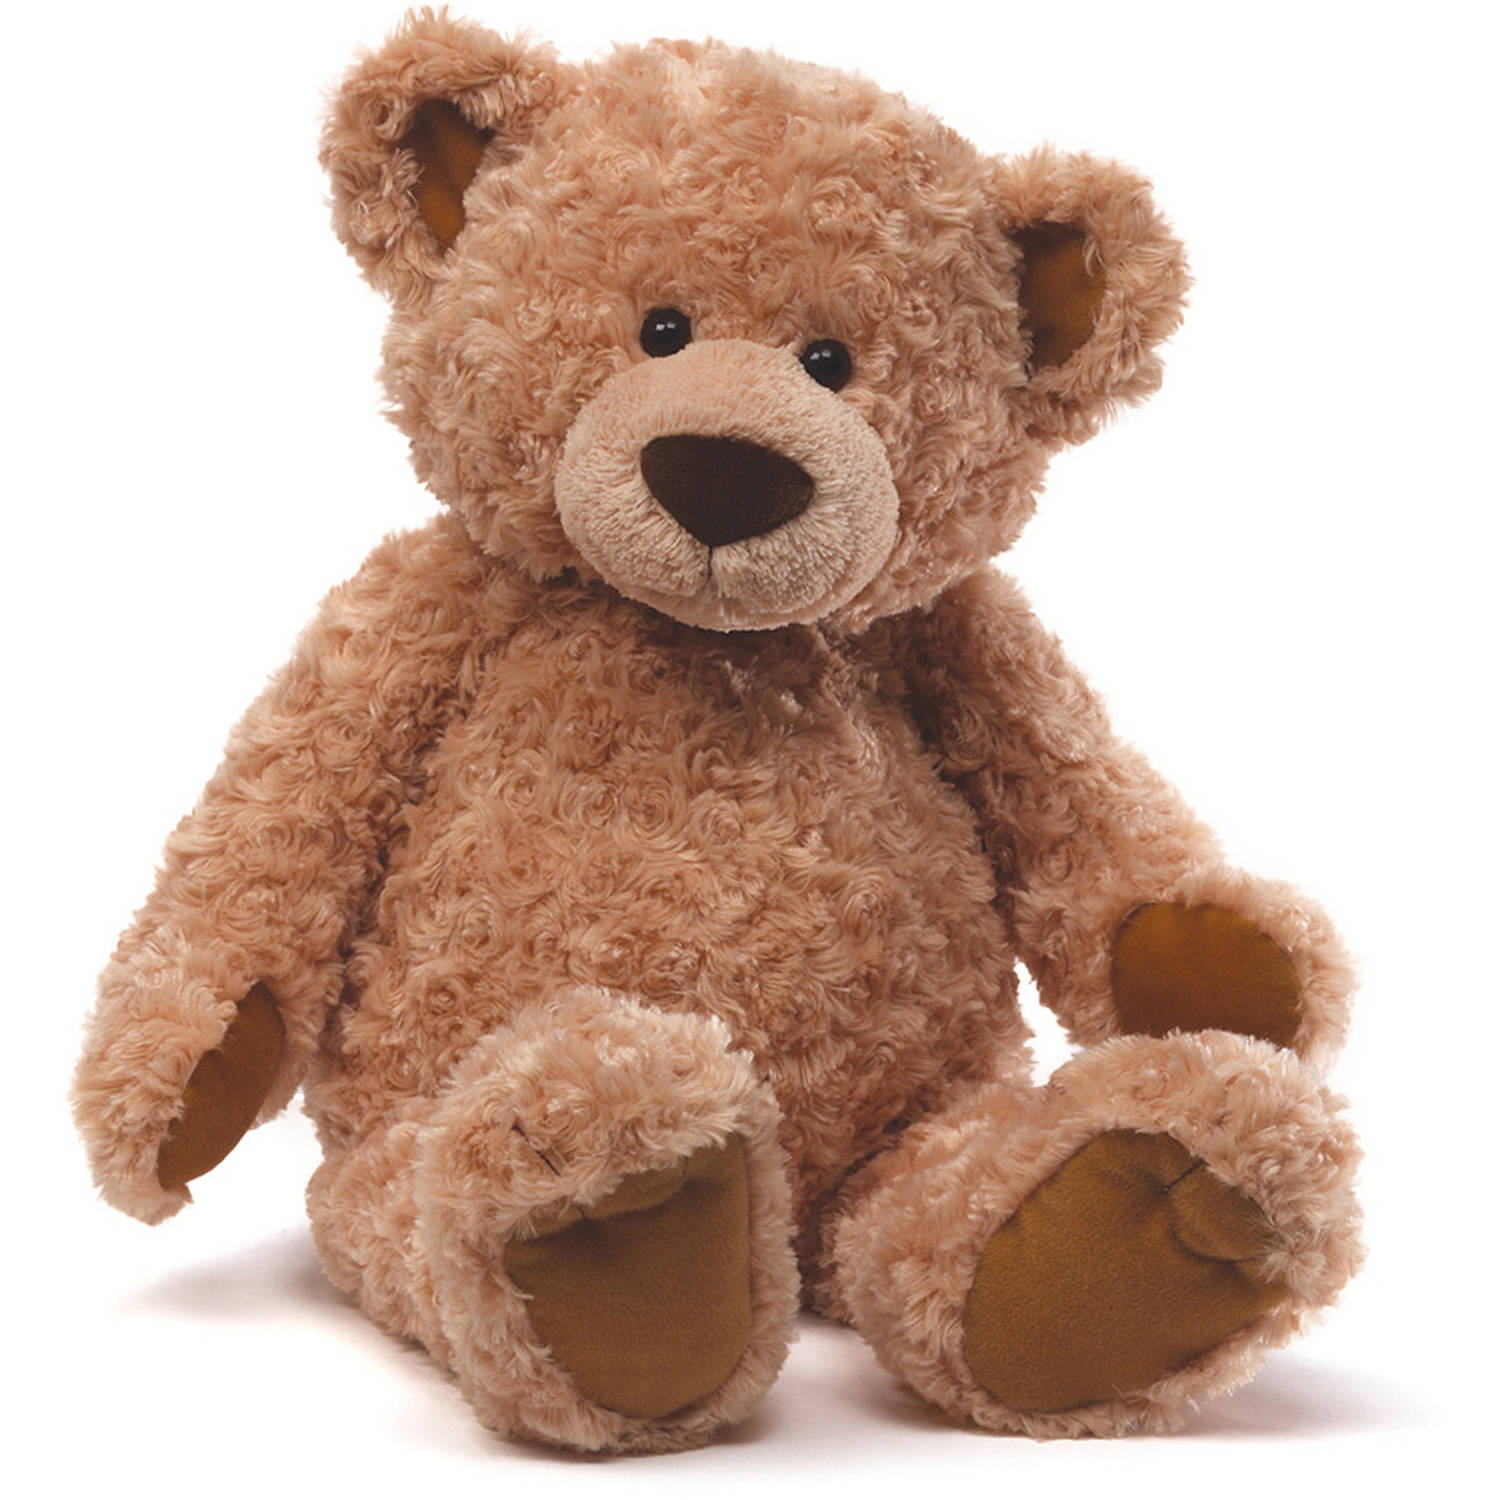 Gund Maxie Teddy Bear 24� Plush, Beige by Gund